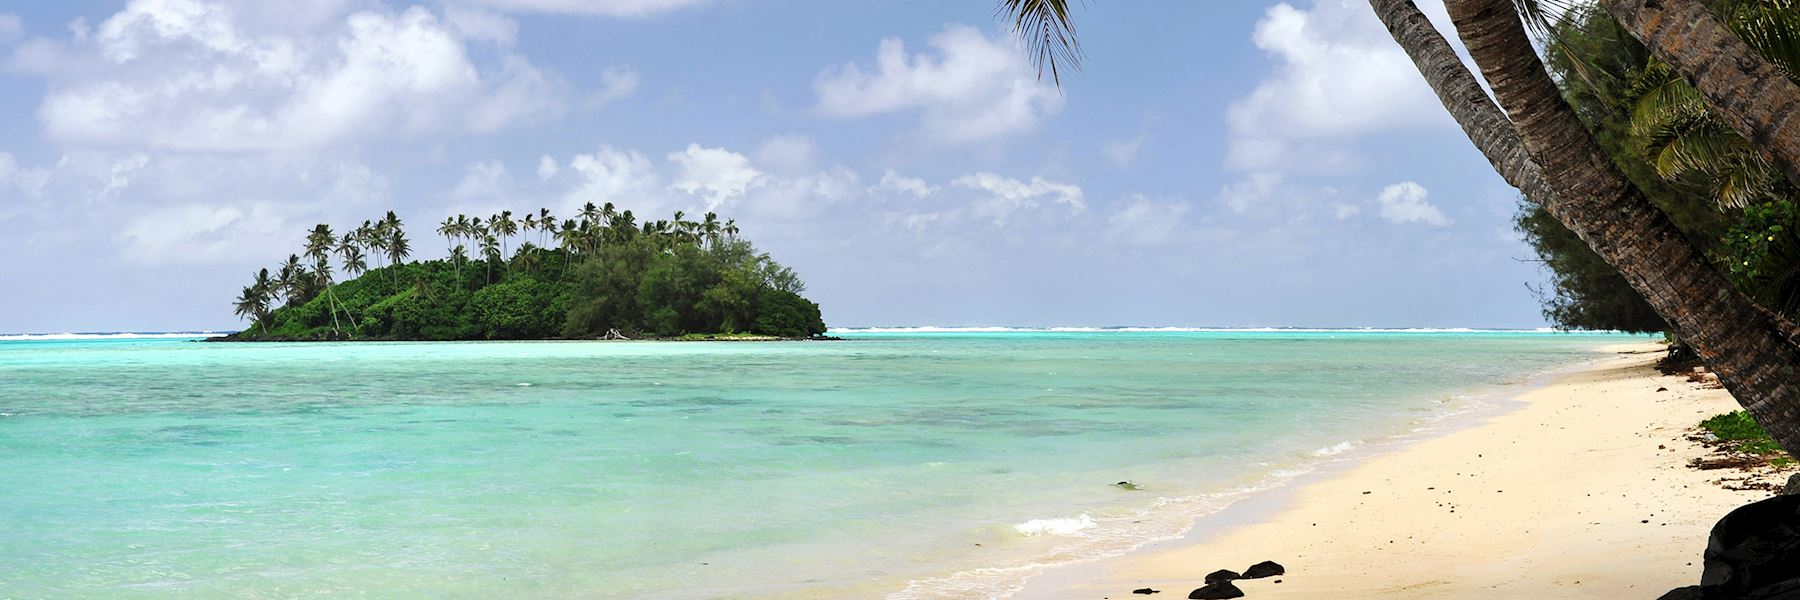 When is the best time to visit the Cook Islands?